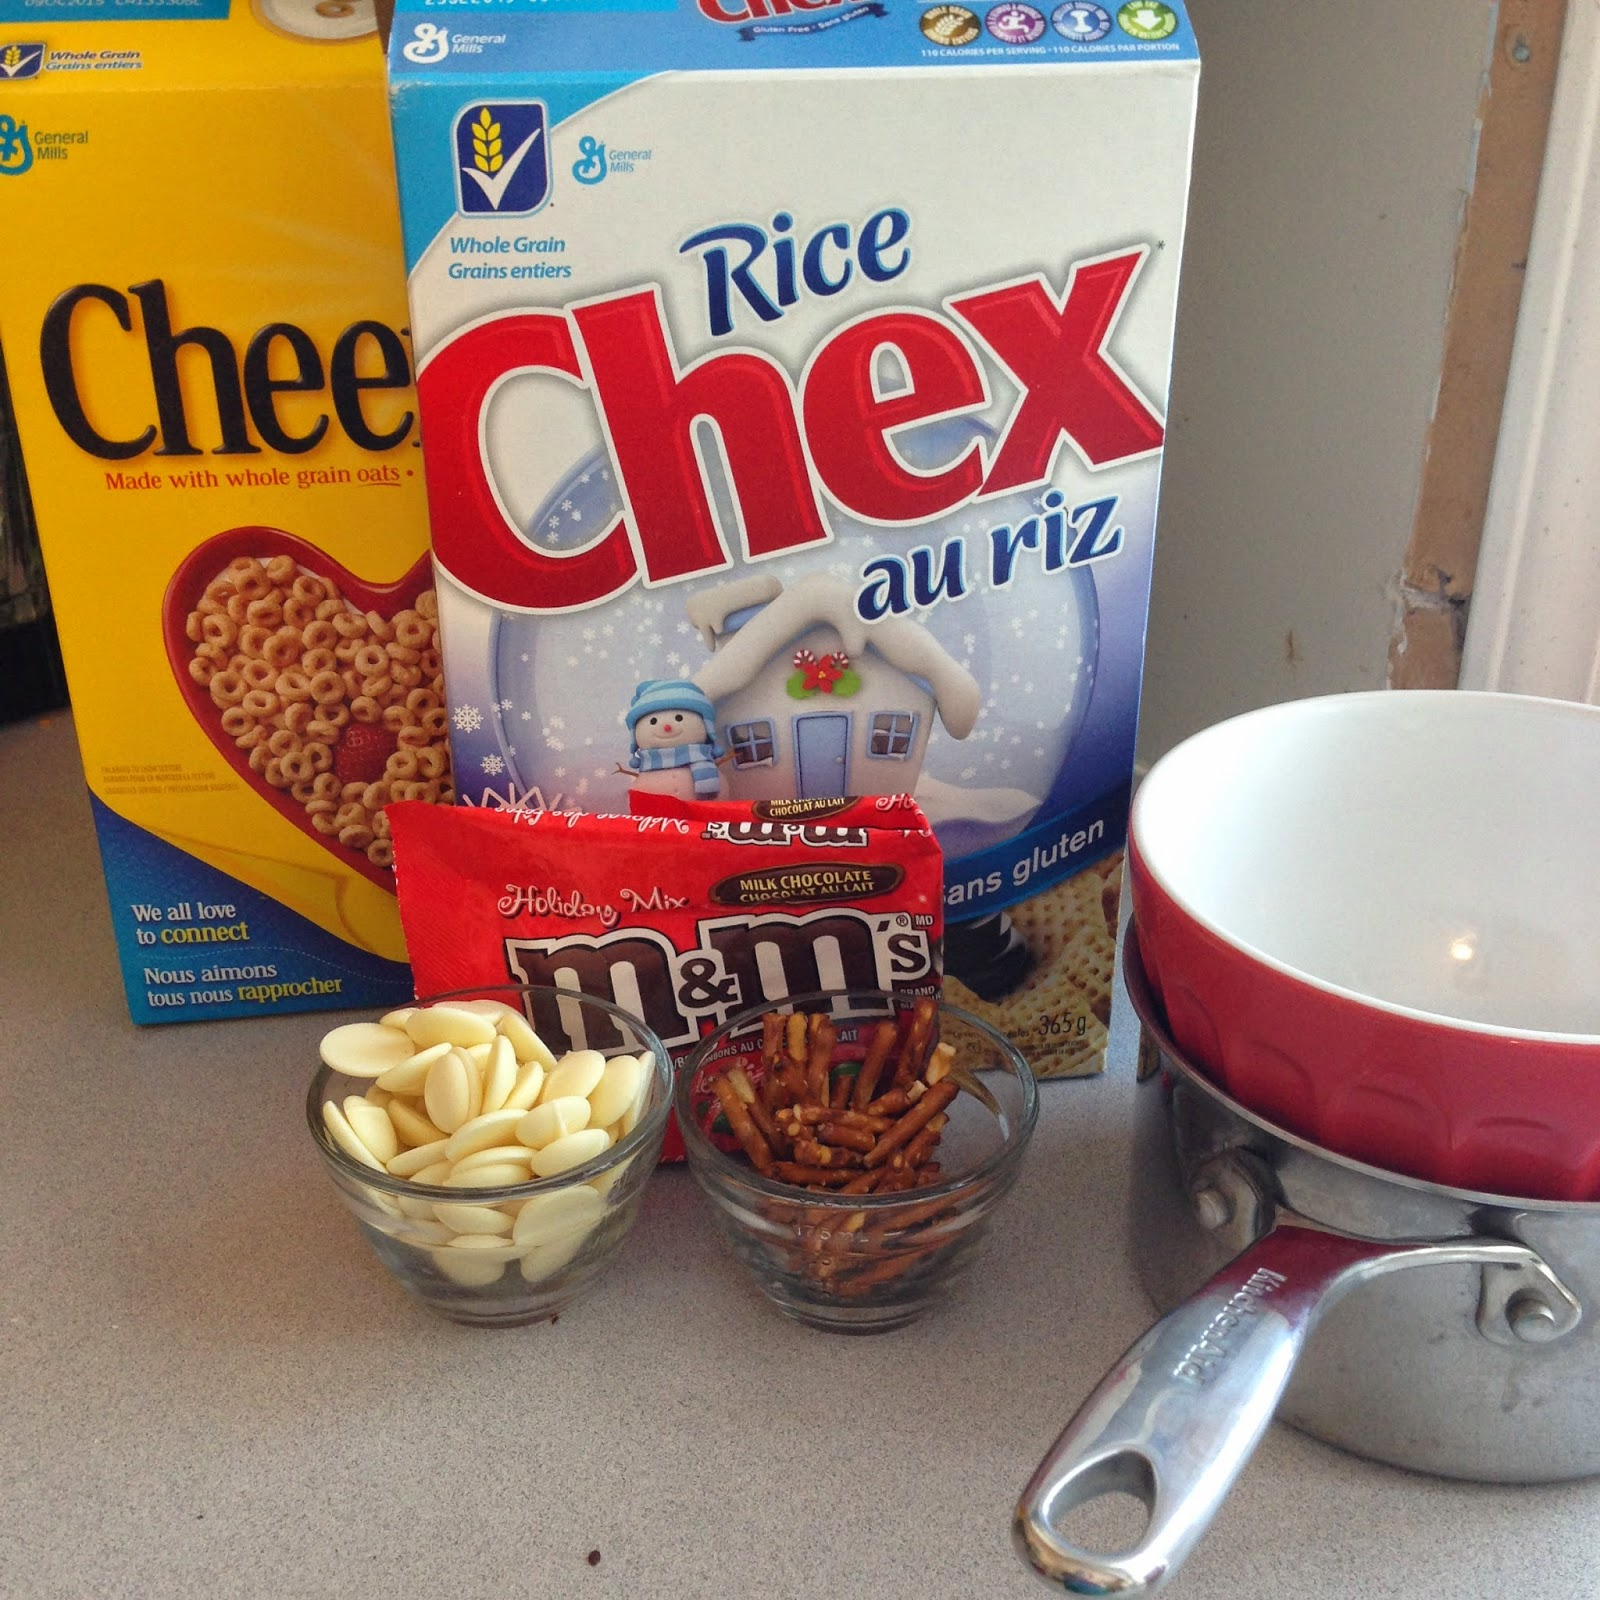 Small Pot And Glass Bowl Or Double Boiler Pretzel Sticks White Chocolate Melts Christmas Mms Cheerios And Chex Cereal